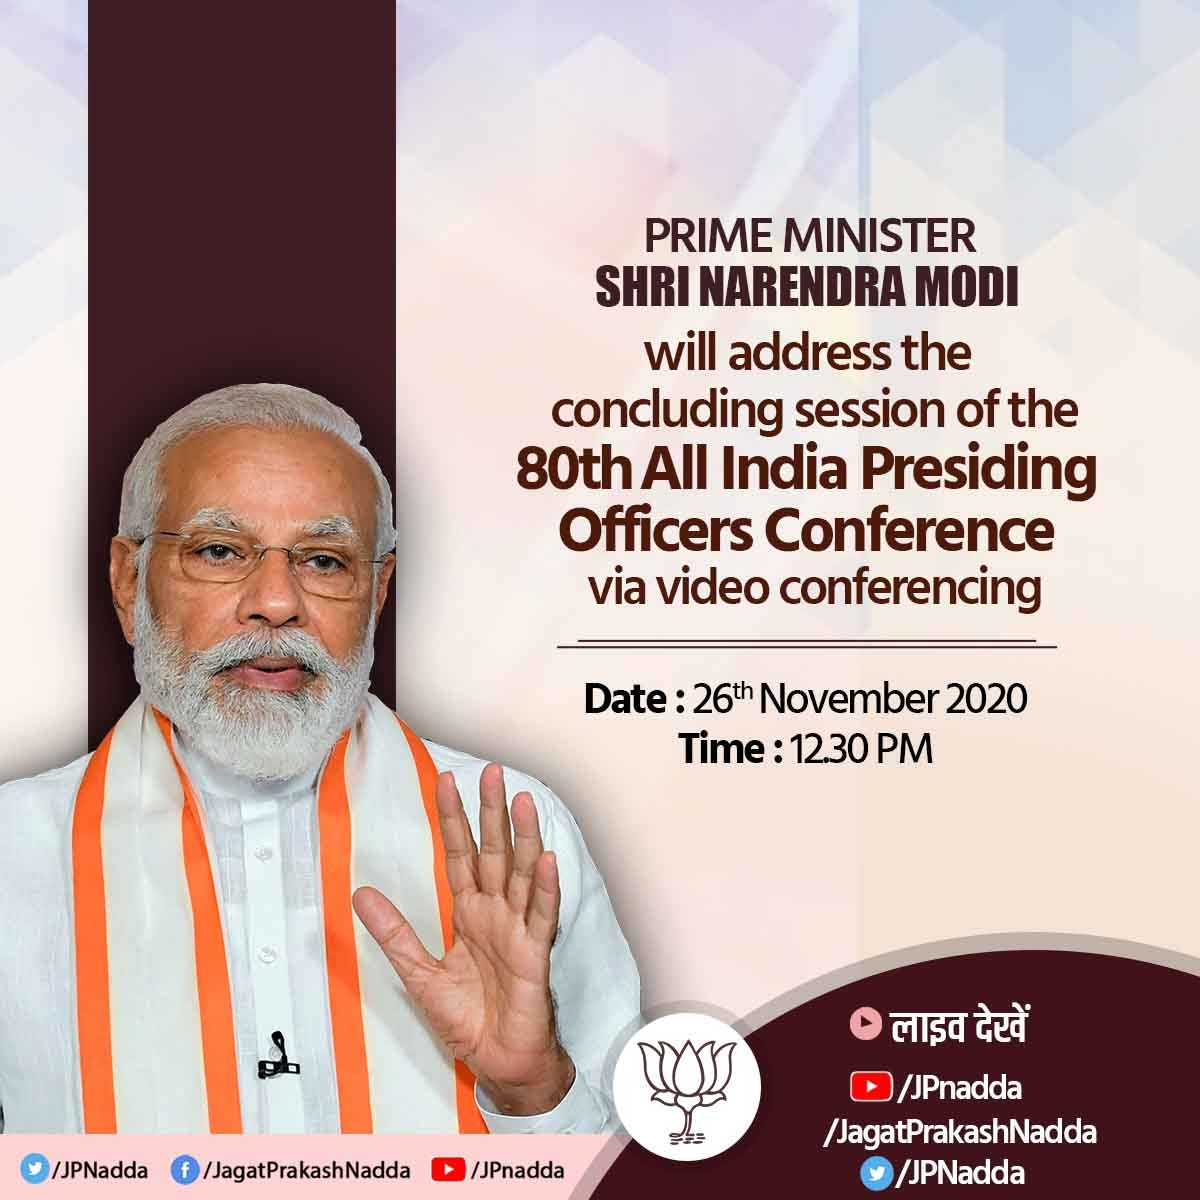 Hon Prime Minister Shri @narendramodi Ji will address the concluding session of the 80th All India Presiding Officers Conference via video Conferencing at 12:30 PM tomorrow.